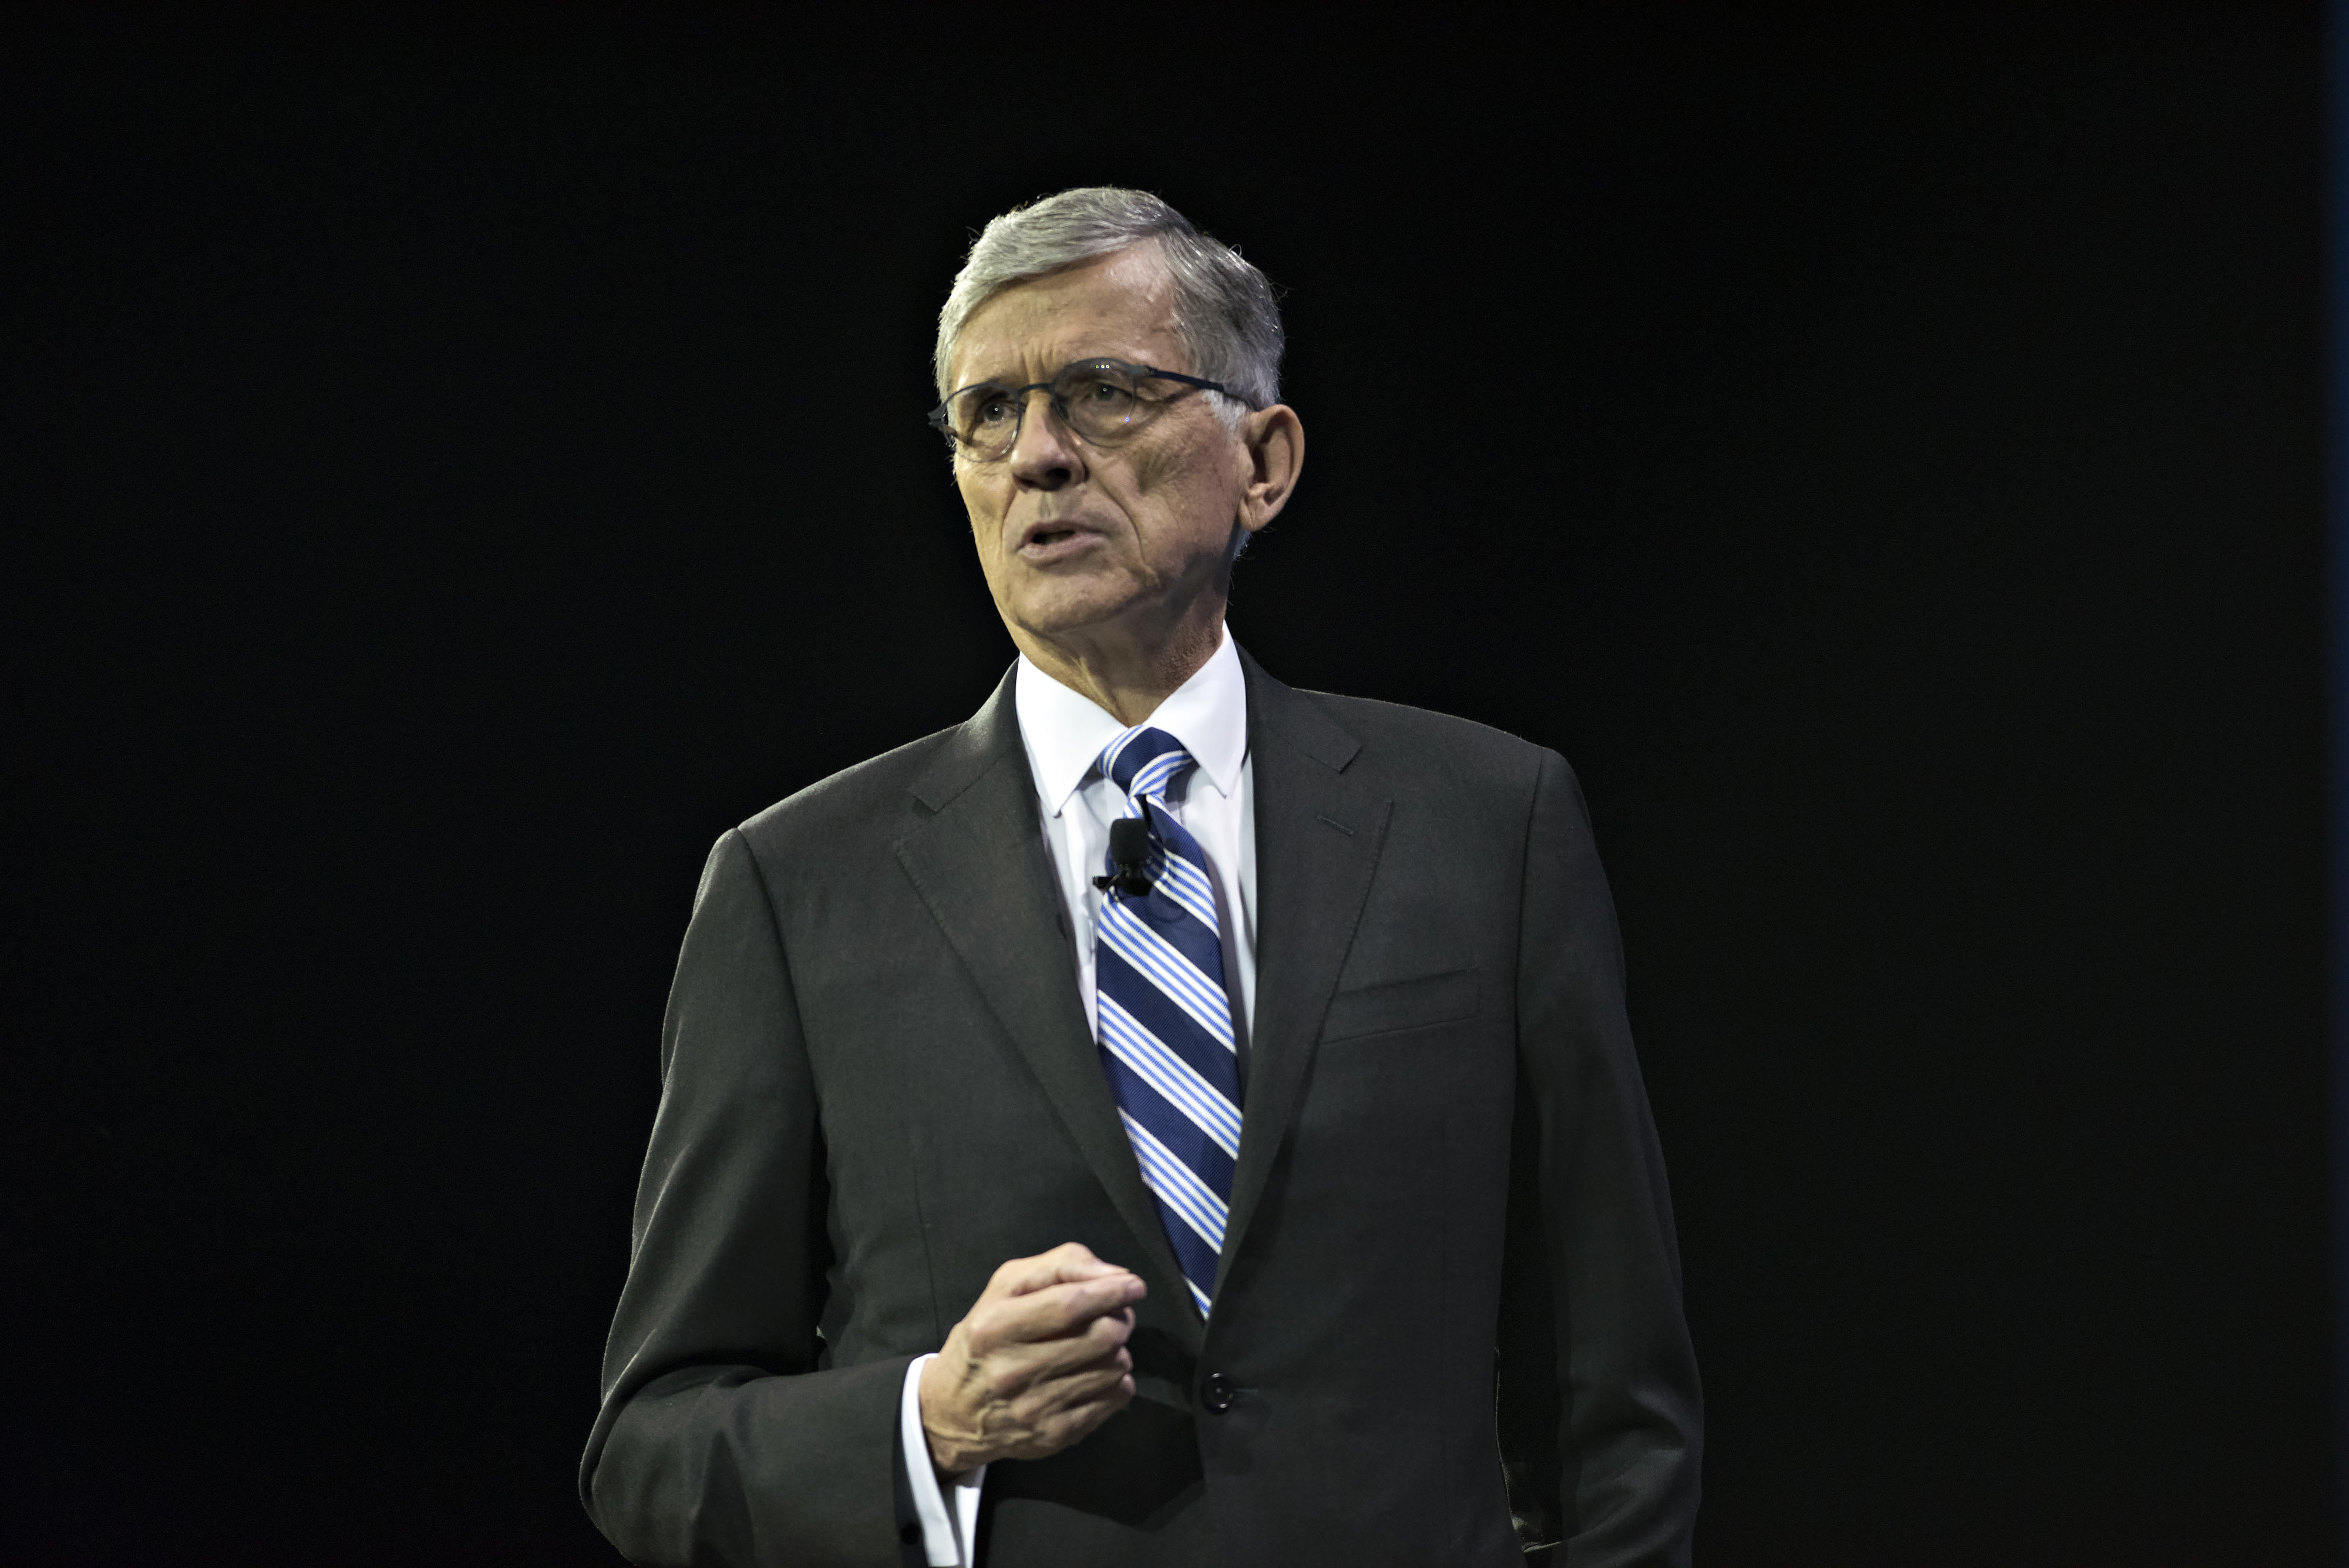 Thomas Wheeler, chairman of the U.S. Federal Communications Commission (FCC), speaks at INTX: The Internet & Television Expo in Chicago, Illinois, U.S., on Wednesday, May 6, 2015. The event, formerly known as the The Cable Show, has been the reimagined for doing business in the digital economy by the National Cable and Telecommunications Association (NCTA). Photographer: Daniel Acker/Bloomberg *** Local Caption *** Thomas Wheeler